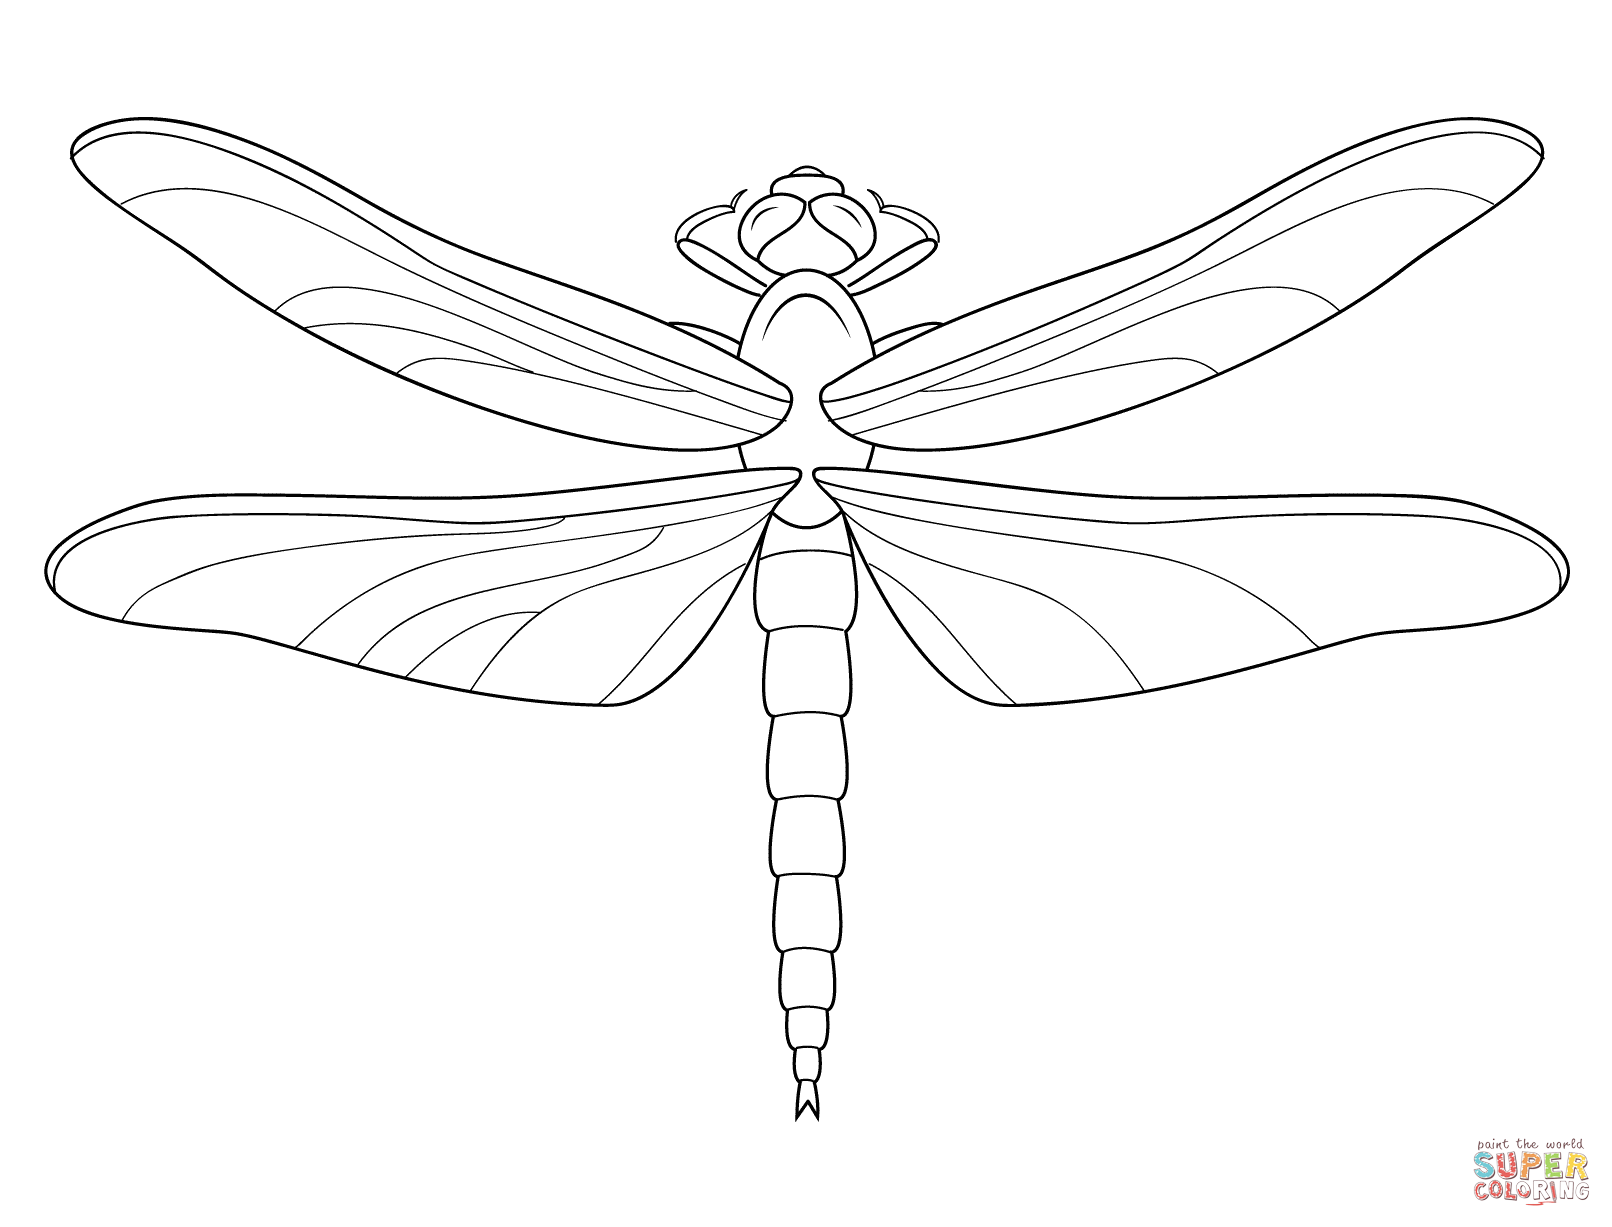 Dragonfly Coloring Page From Dragonfly Category Select From 28148 Printable Crafts Of Cartoons Nature Anim Dragonfly Drawing Coloring Pages Dragonfly Images